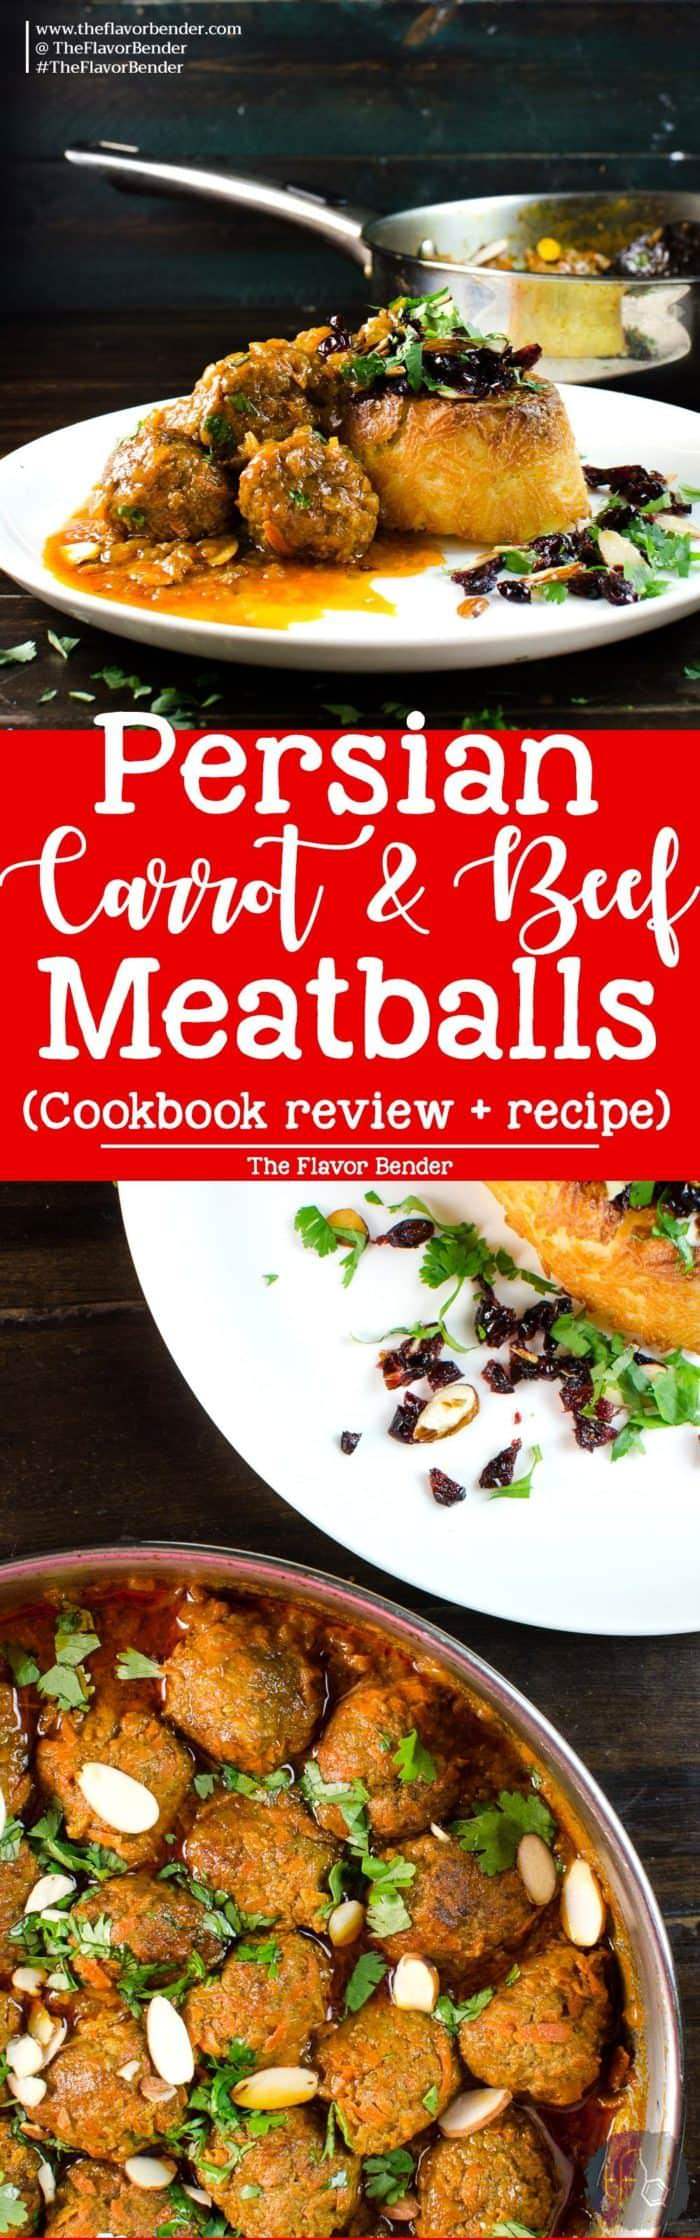 Persian Carrot and Beef Meatball recipe - A delicious and easy Persian kofta recipe packed with flavor! Sweetness from carrots and wonderful spices, this is a fragrant and flavorful Persian classic. Plus a cookbook review for The Enchantingly Easy Persian Cookbook